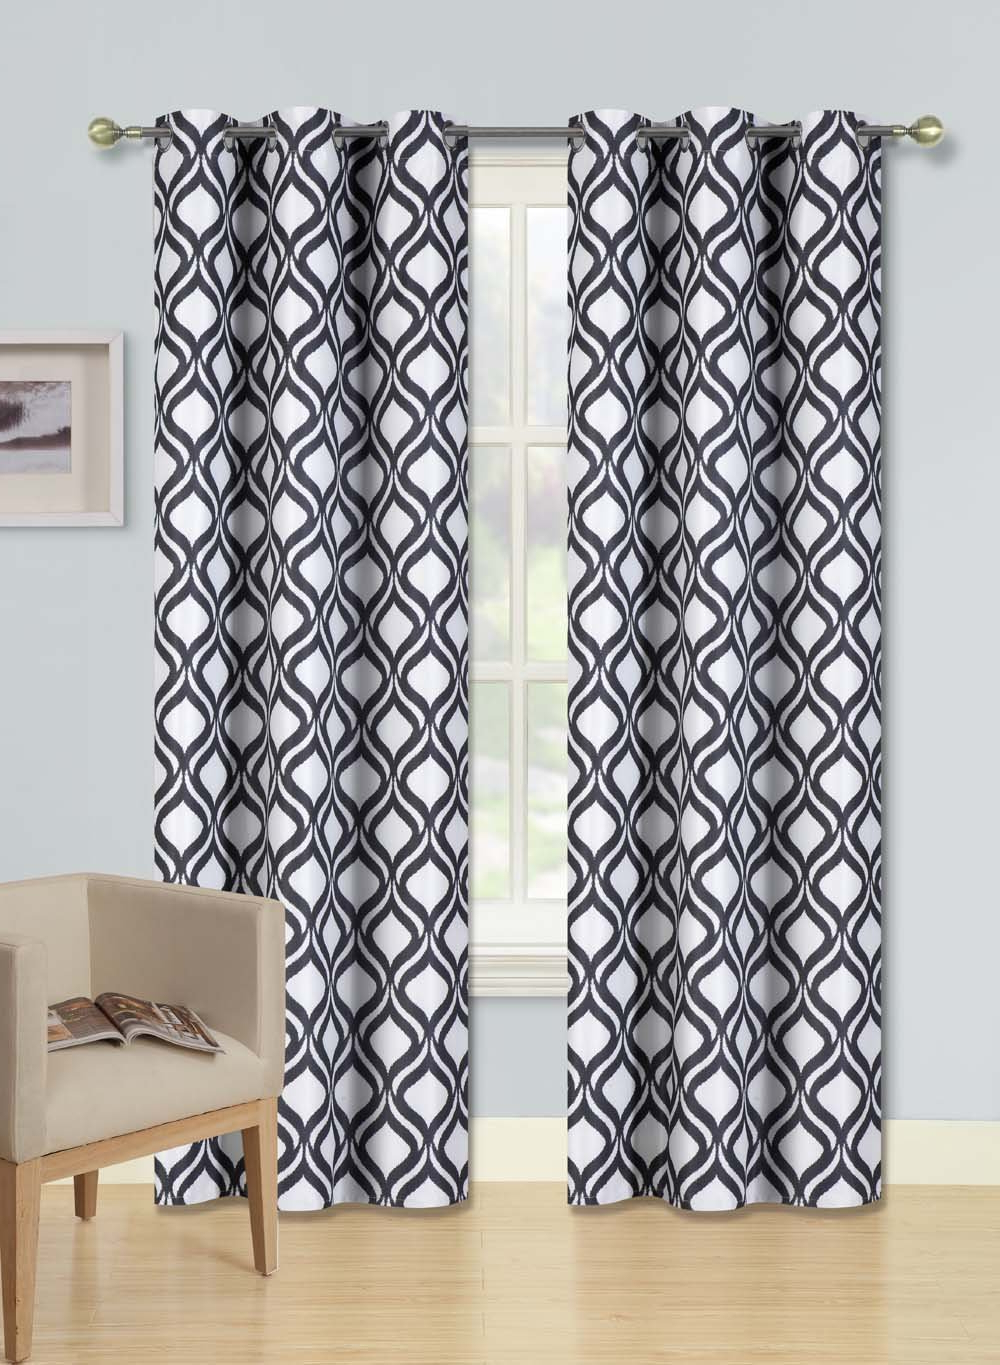 Current Edward Moroccan Pattern Room Darkening Curtain Panel Pairs Inside Black & White Curtains Seasonal Sale – Recipes With More (View 18 of 20)